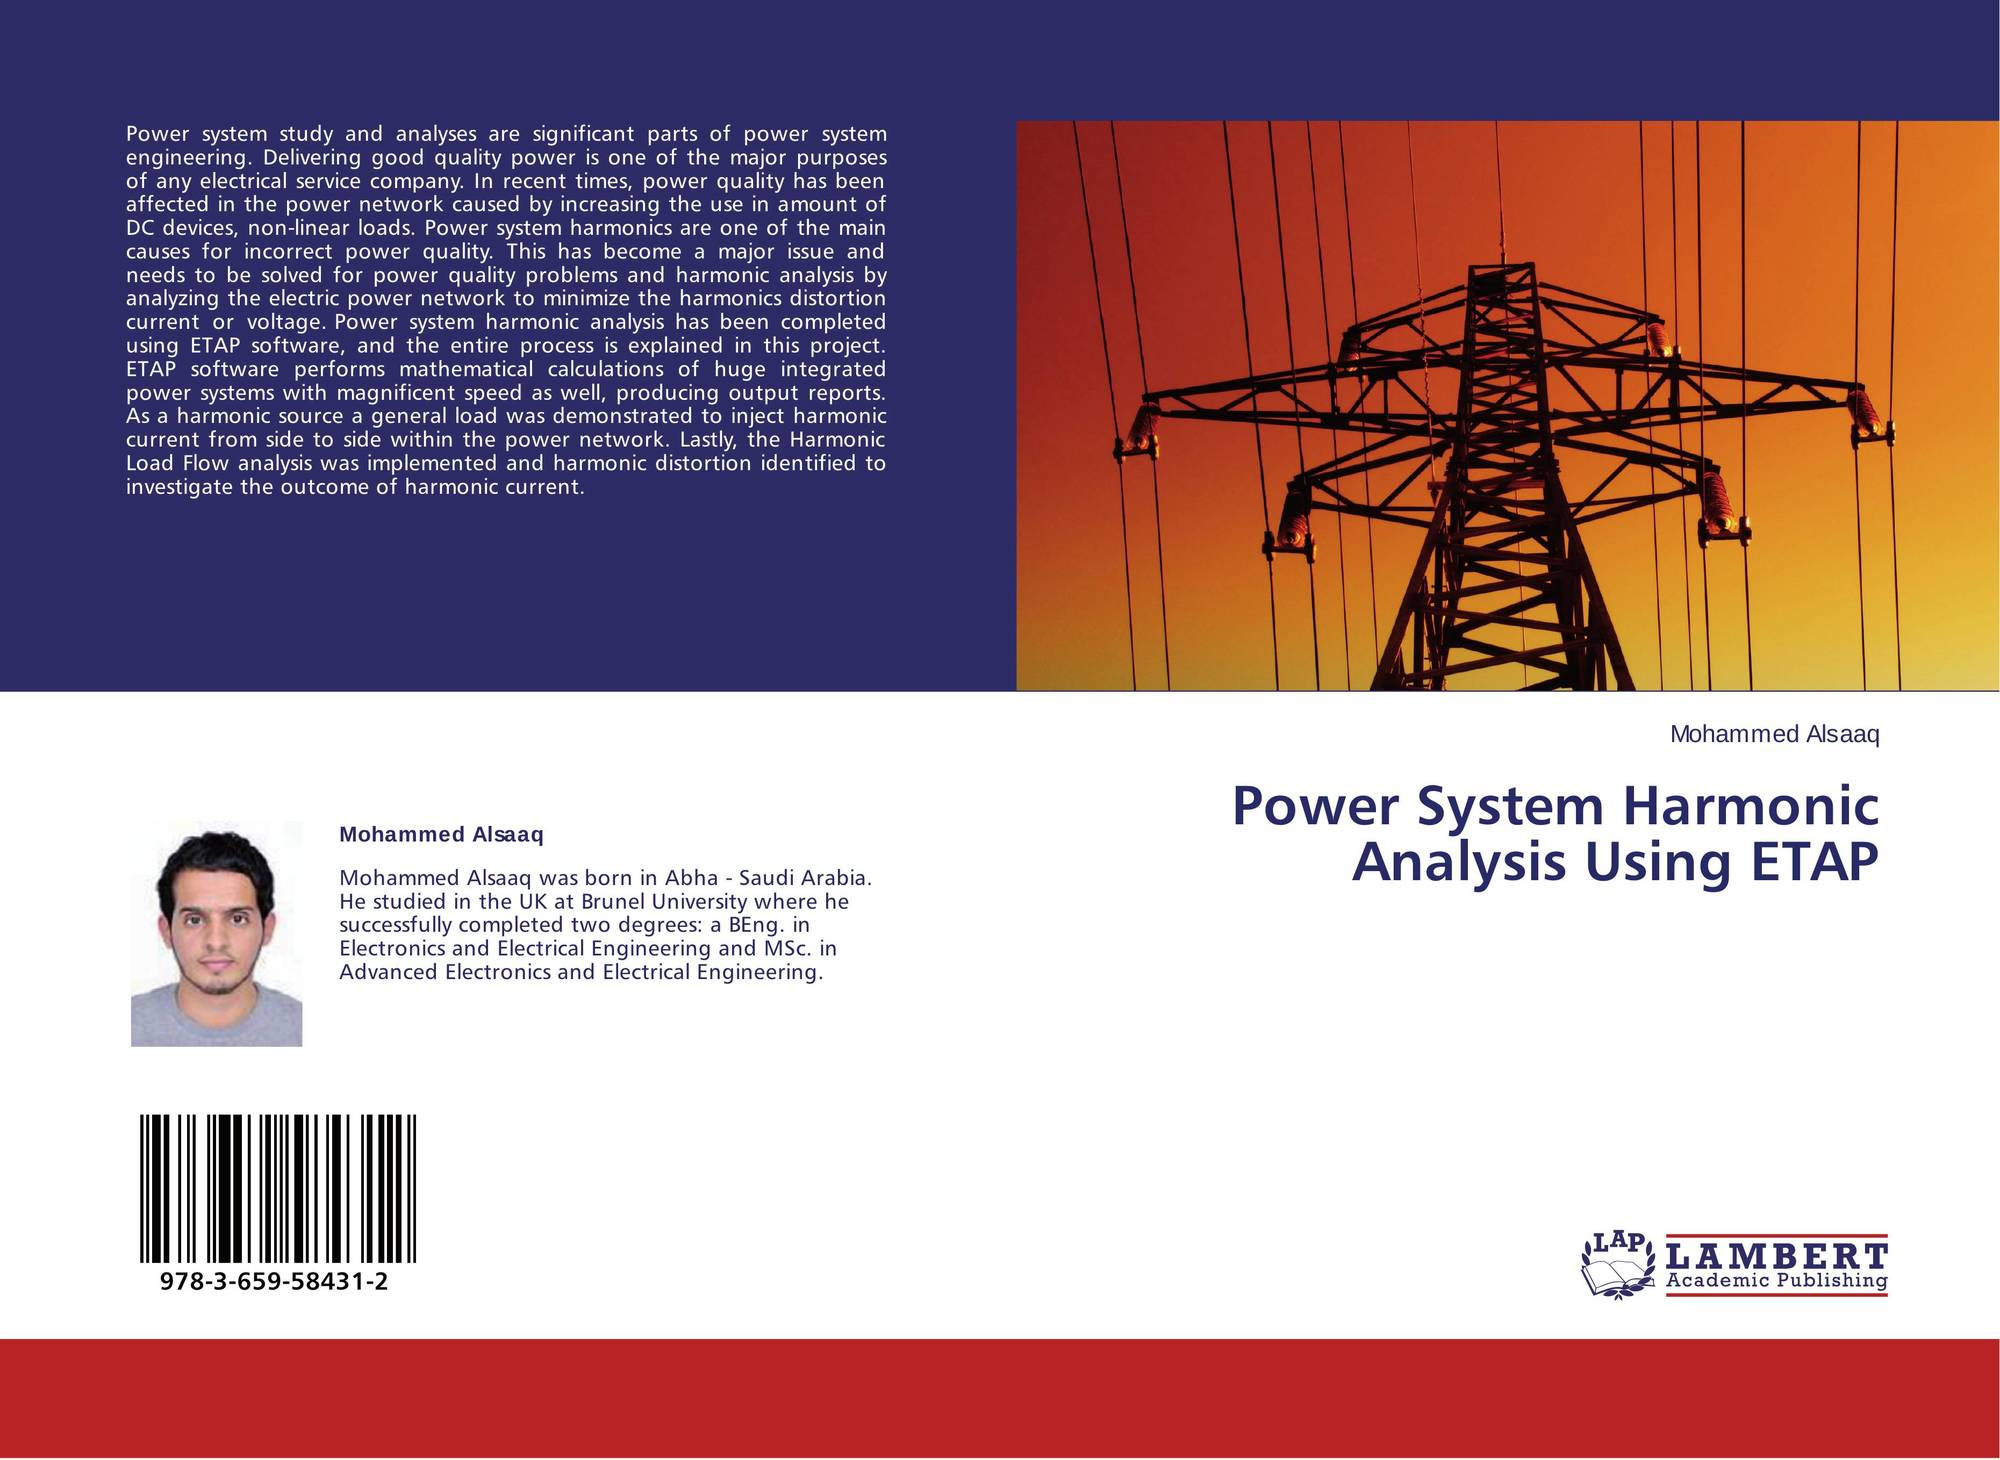 Power System Harmonic Analysis Using ETAP , 978-3-659-58431-2